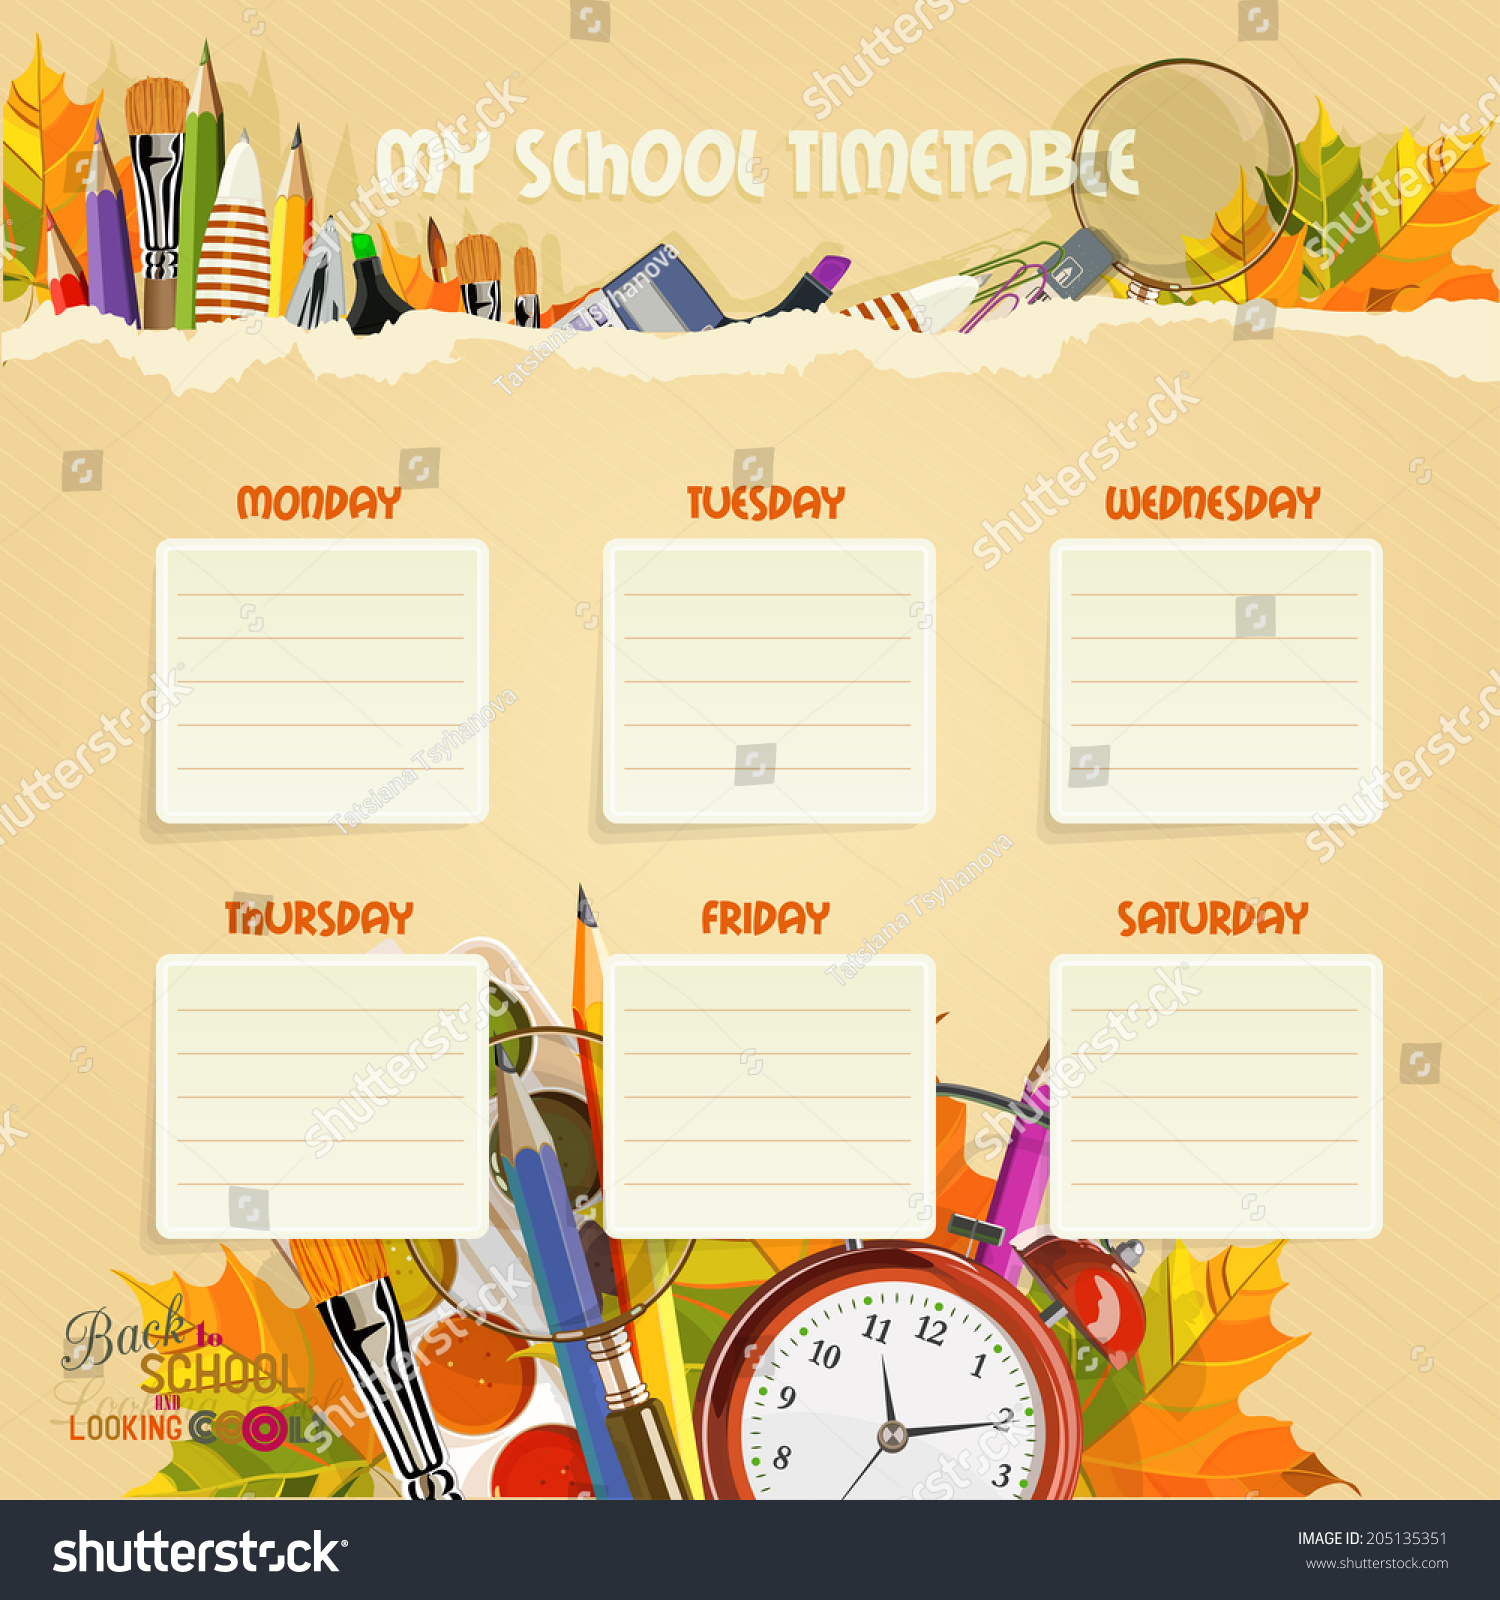 Quotes On School Time Table: School Timetable Schedule Back School Stock Vector